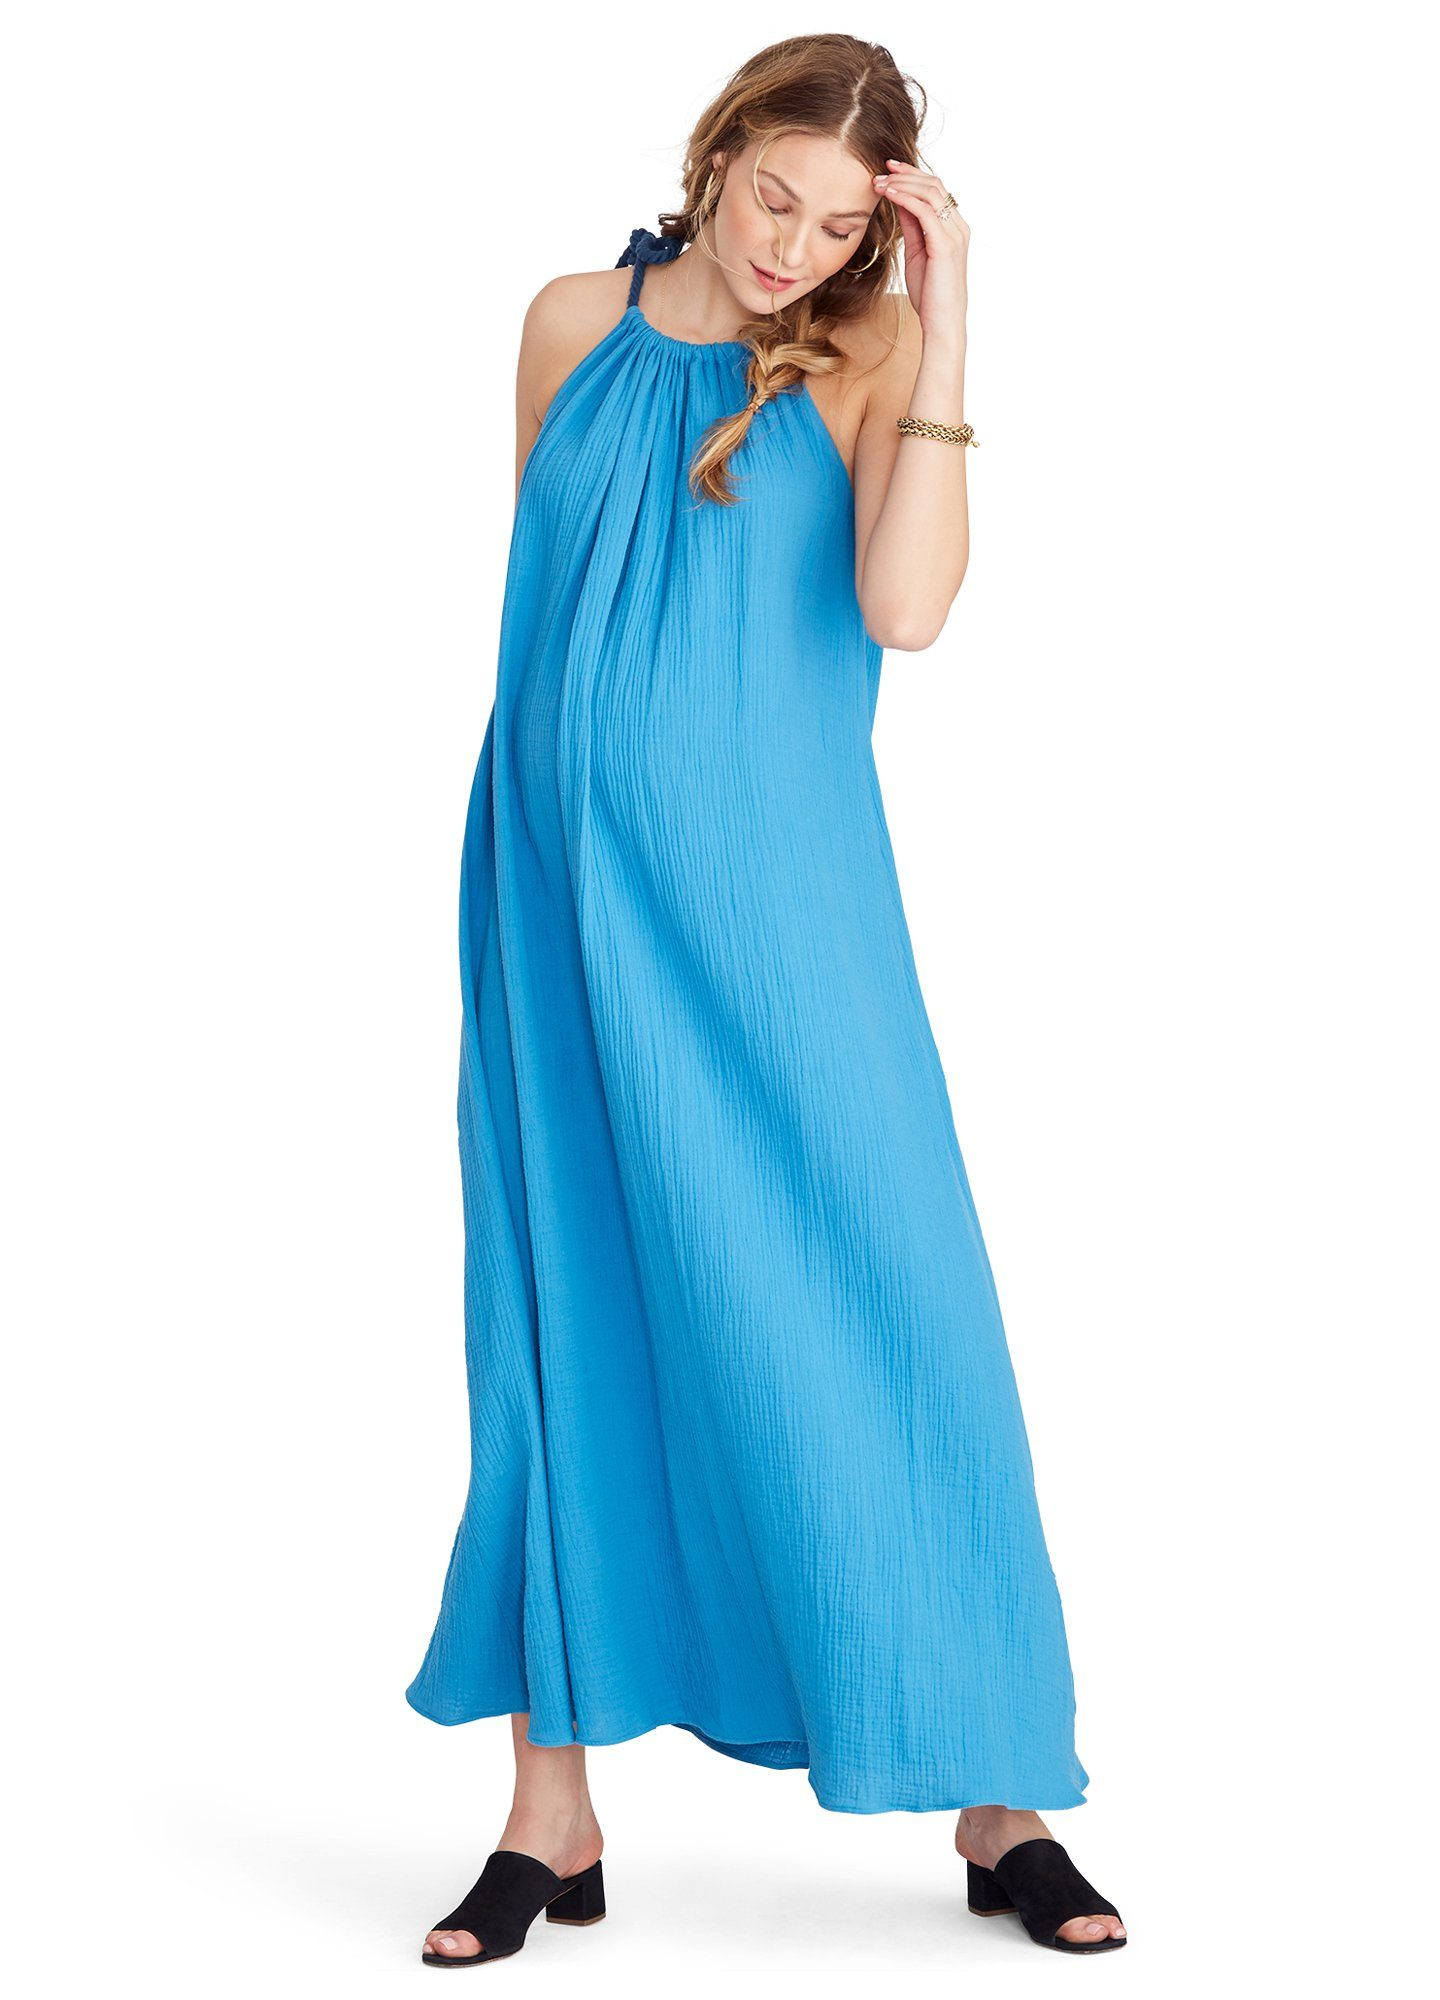 HATCH Maternity The Sienna Dress, Ocean, Size P